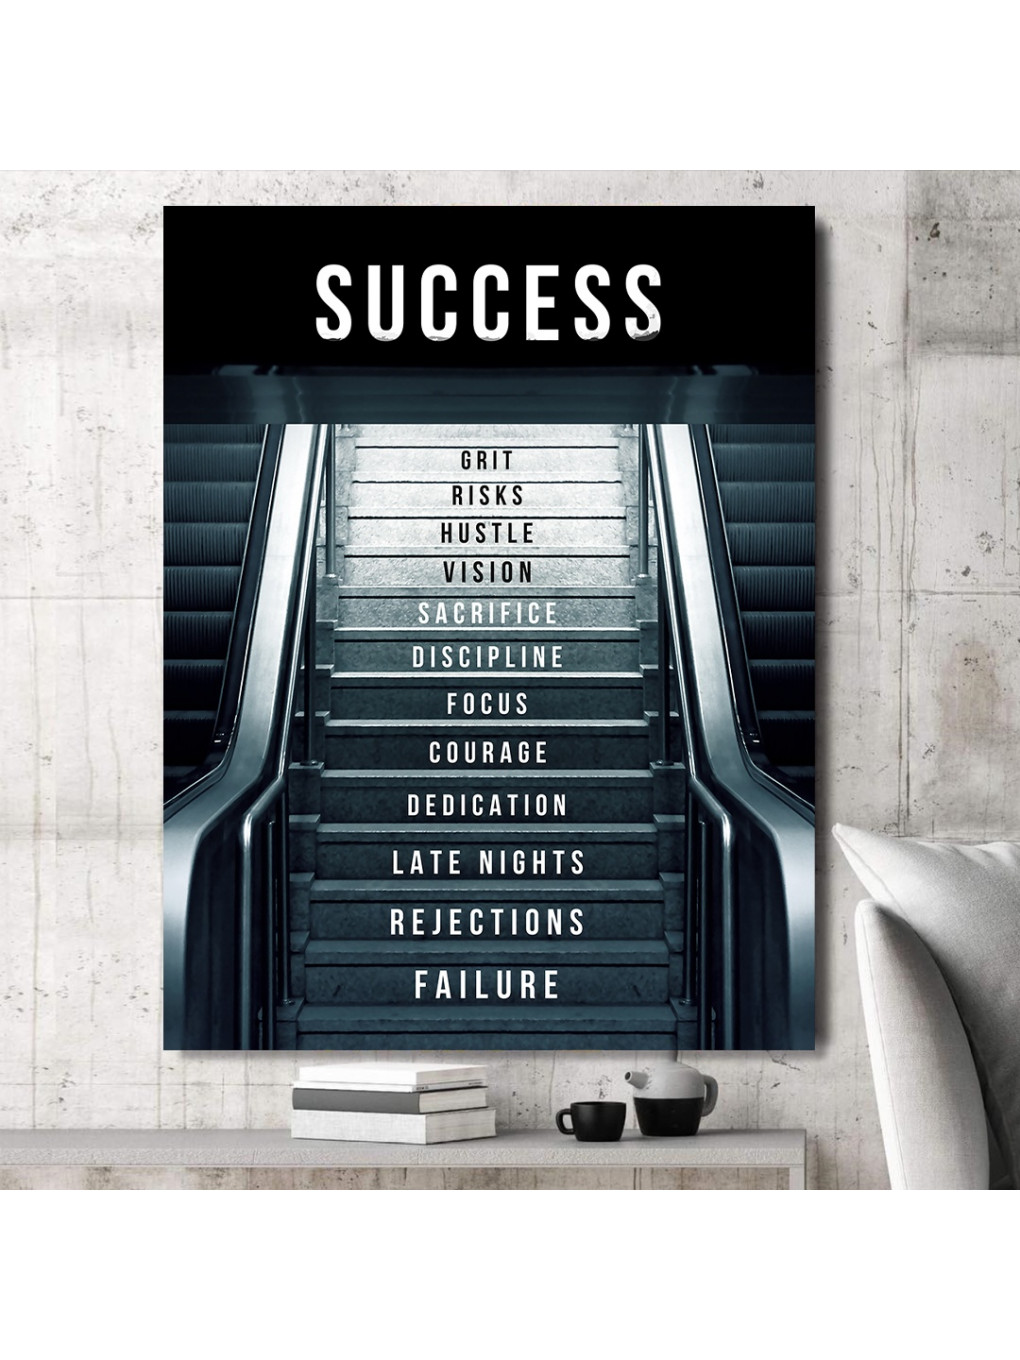 Take the Stairs - Success_SUC084_3